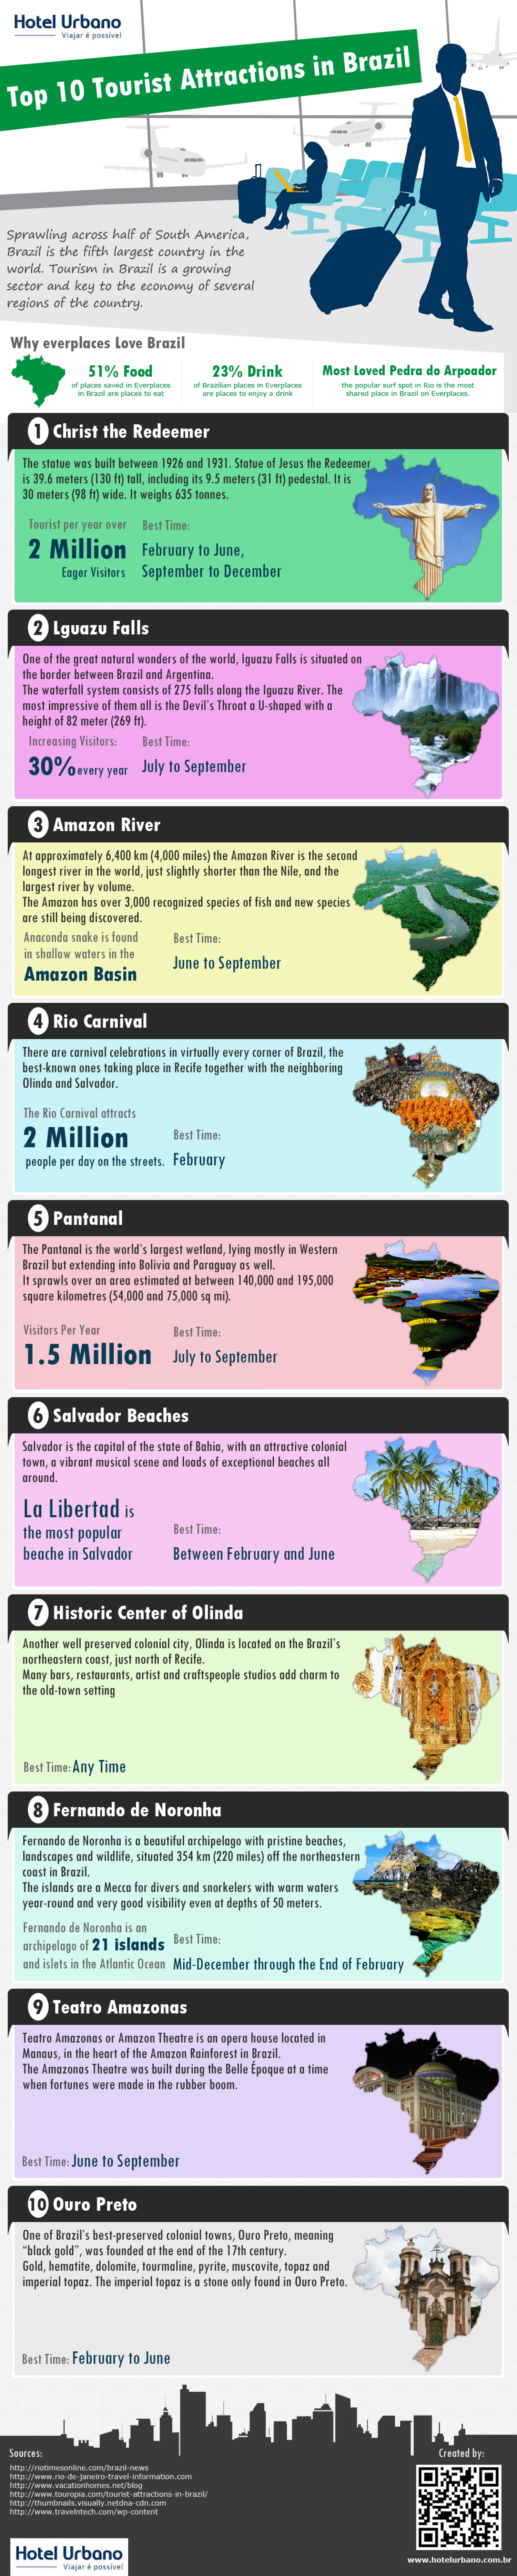 Infographics : Hotel Urbano - Ultimate destination to experience wonderful attractions in Brazil Infographic